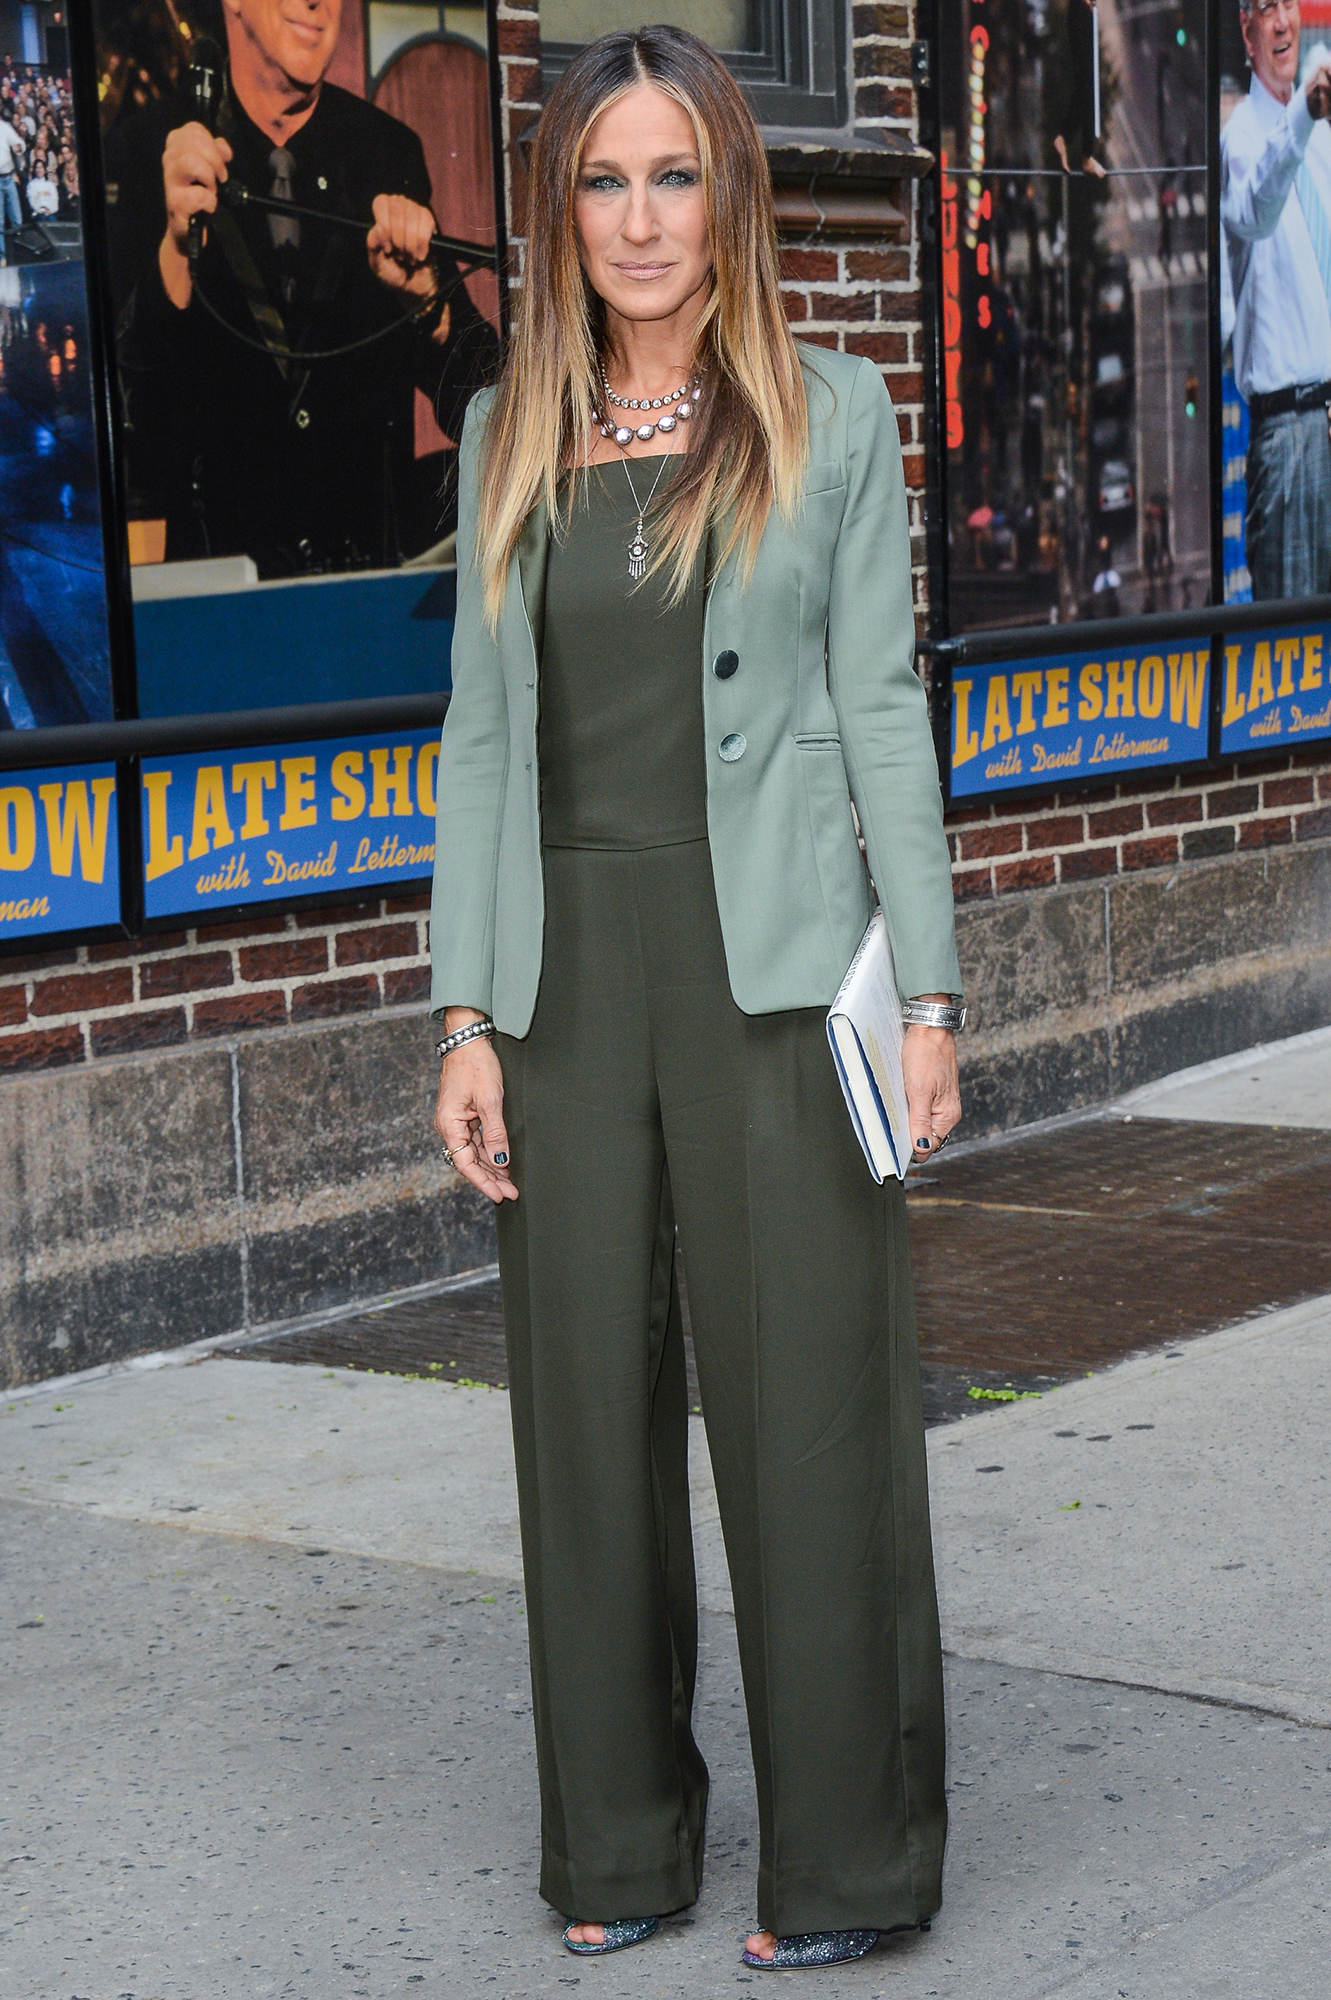 Happy Birthday, Sarah Jessica Parker! See Her Red Carpet Style Evolution - The footwear designer stopped by the Late Show With David Letterman in April 2015 in an olive green Theory jumpsuit that she accessorized with a mint blazer, sparkly shoes and layered necklaces.